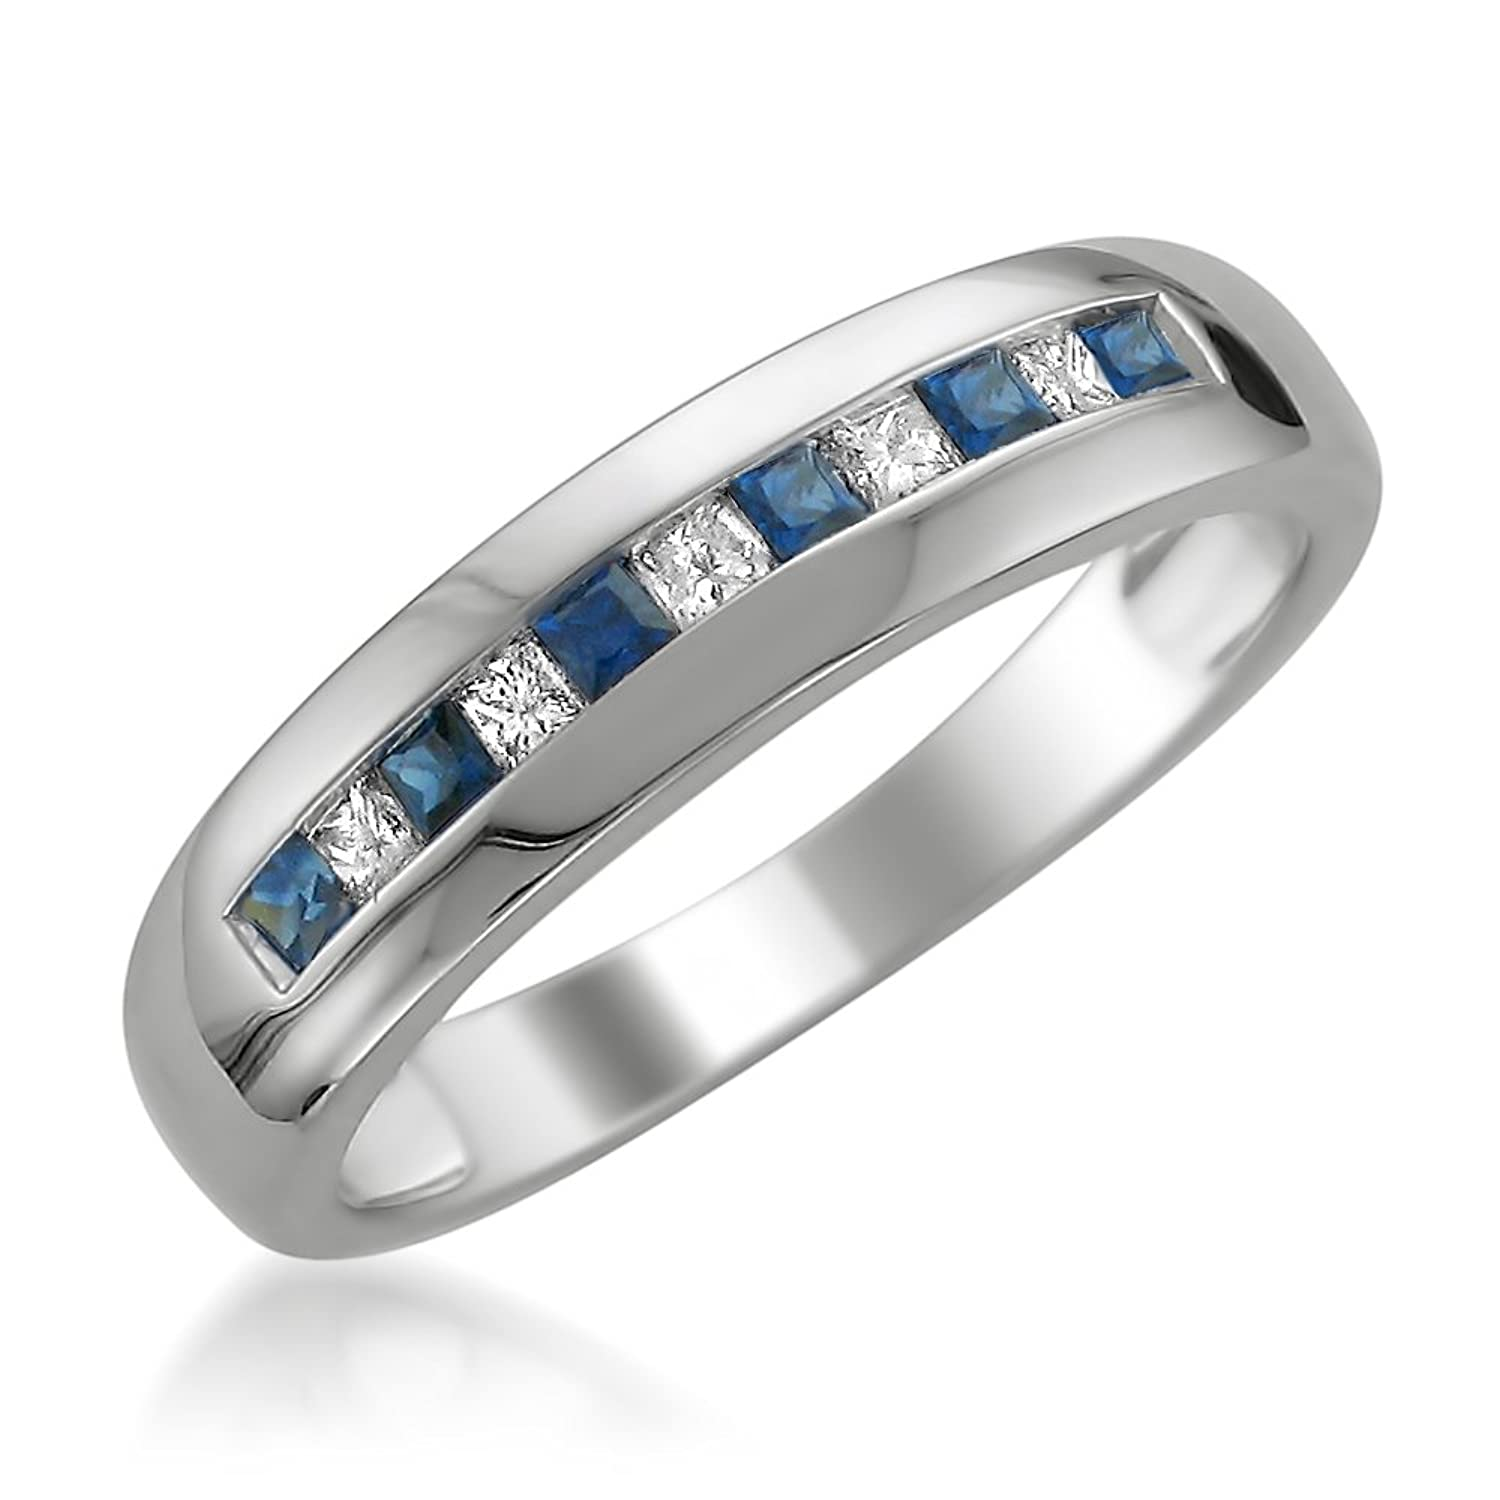 white band estate wang diamond carat jewelry at gold and j gents vera sapphire wedding rings ring id master